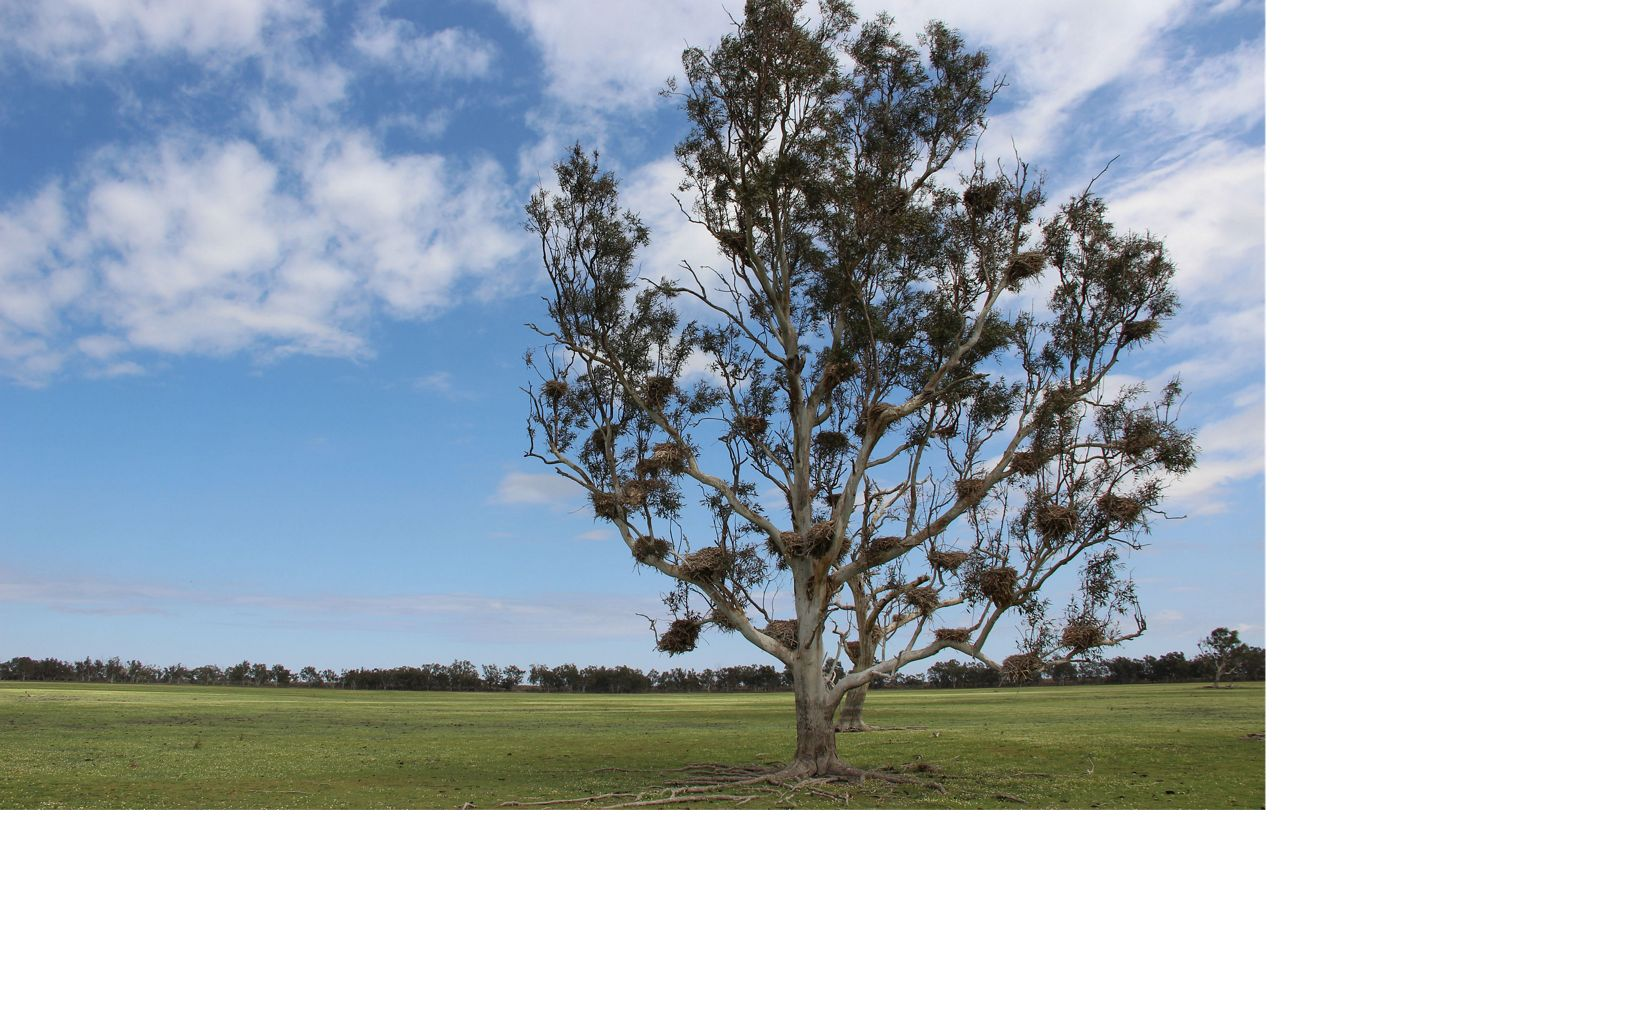 a River Red Gum tree crowded with cormorant nests from a previous flooding event stands in the dry lake bed